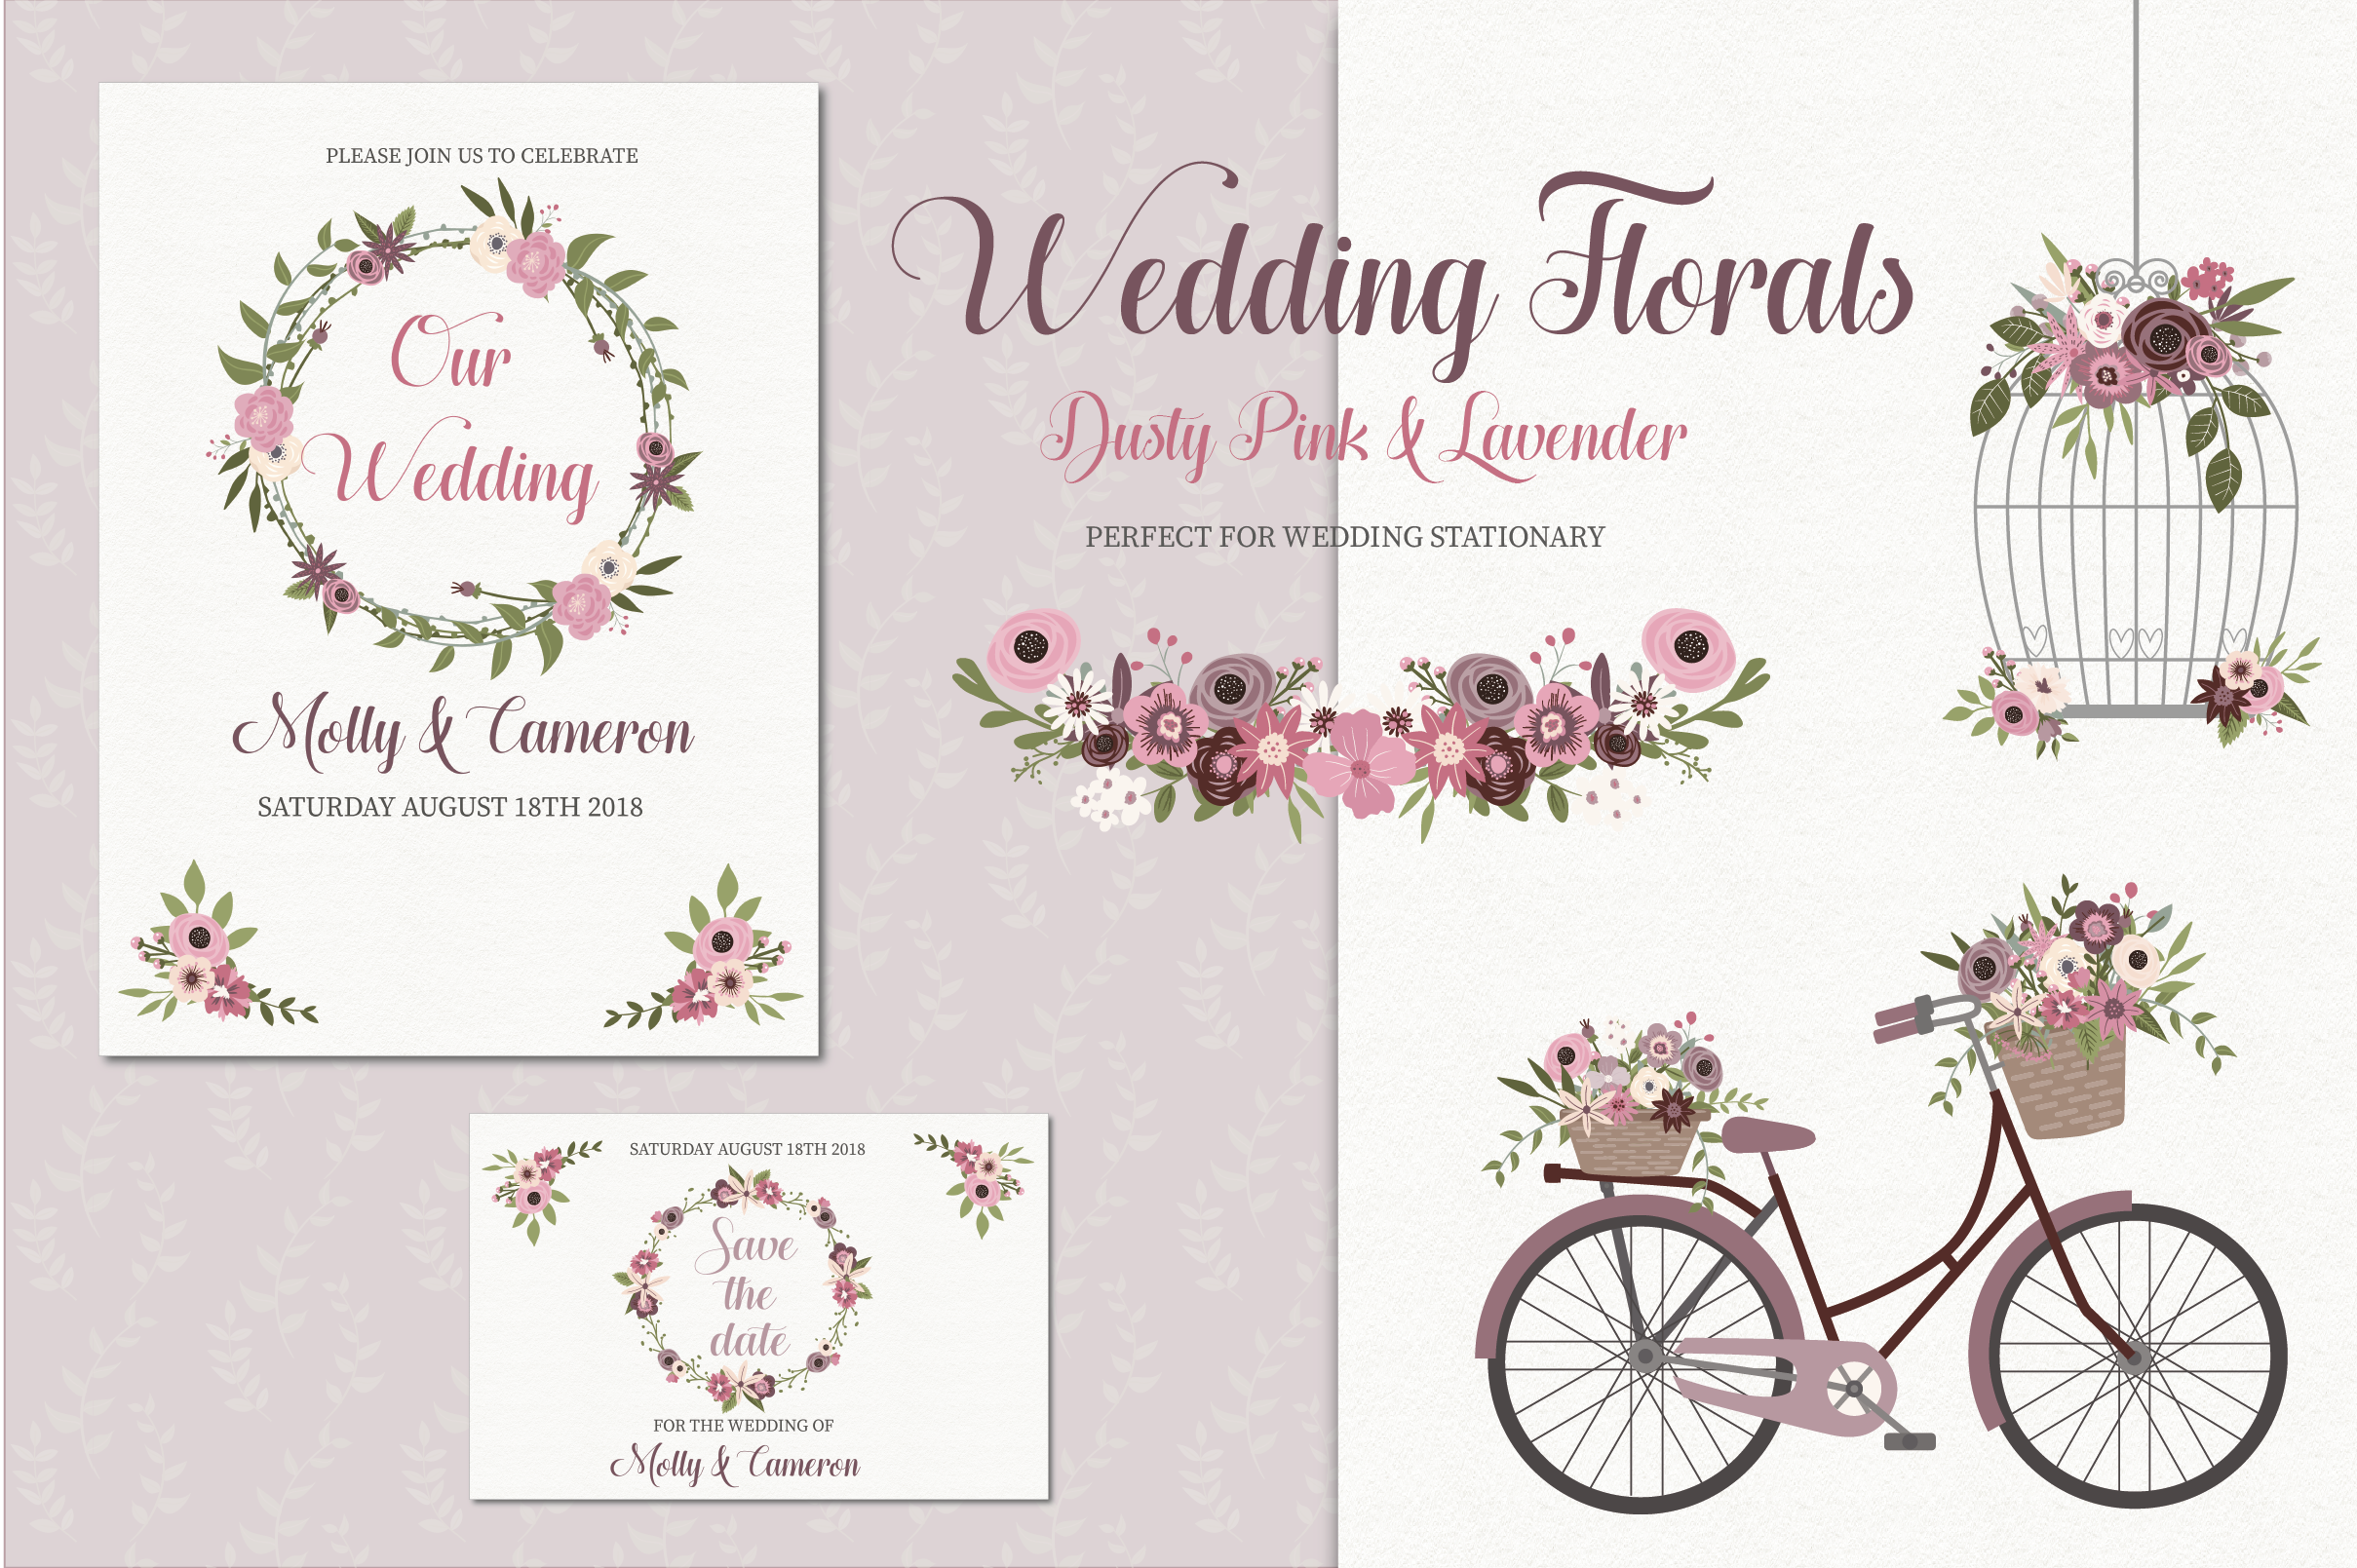 Wedding florals clipart example image 1